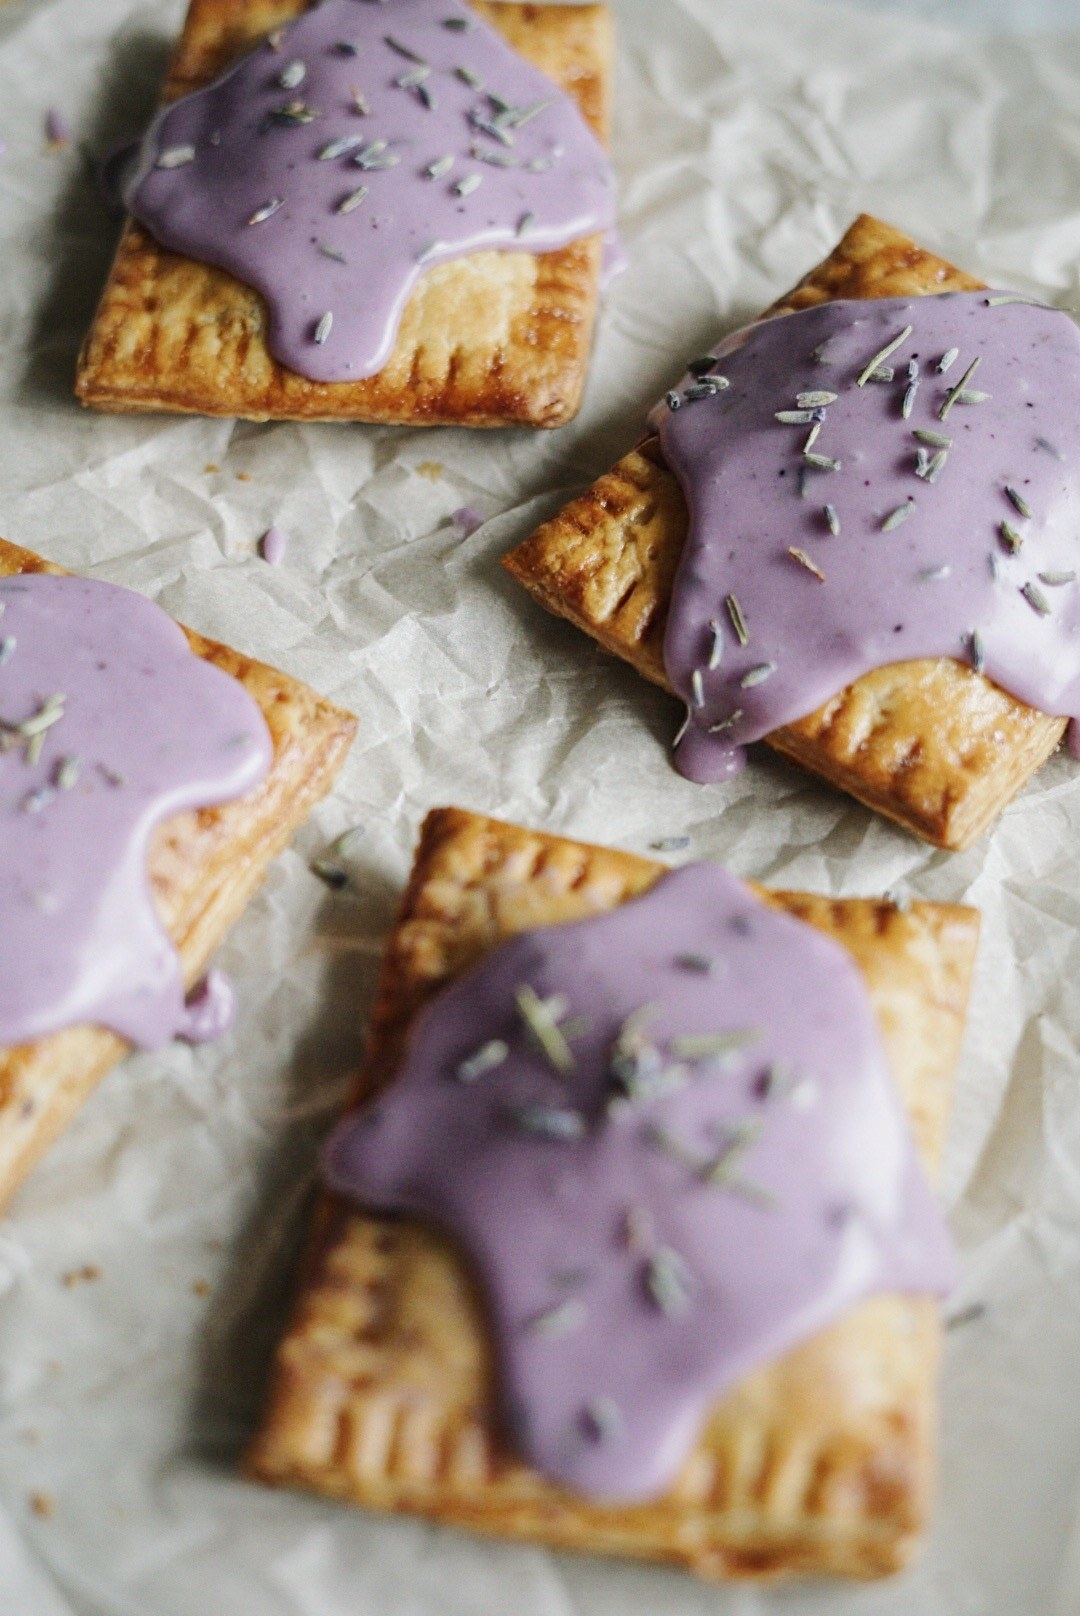 Pop Tarts with lavender blueberry icing.